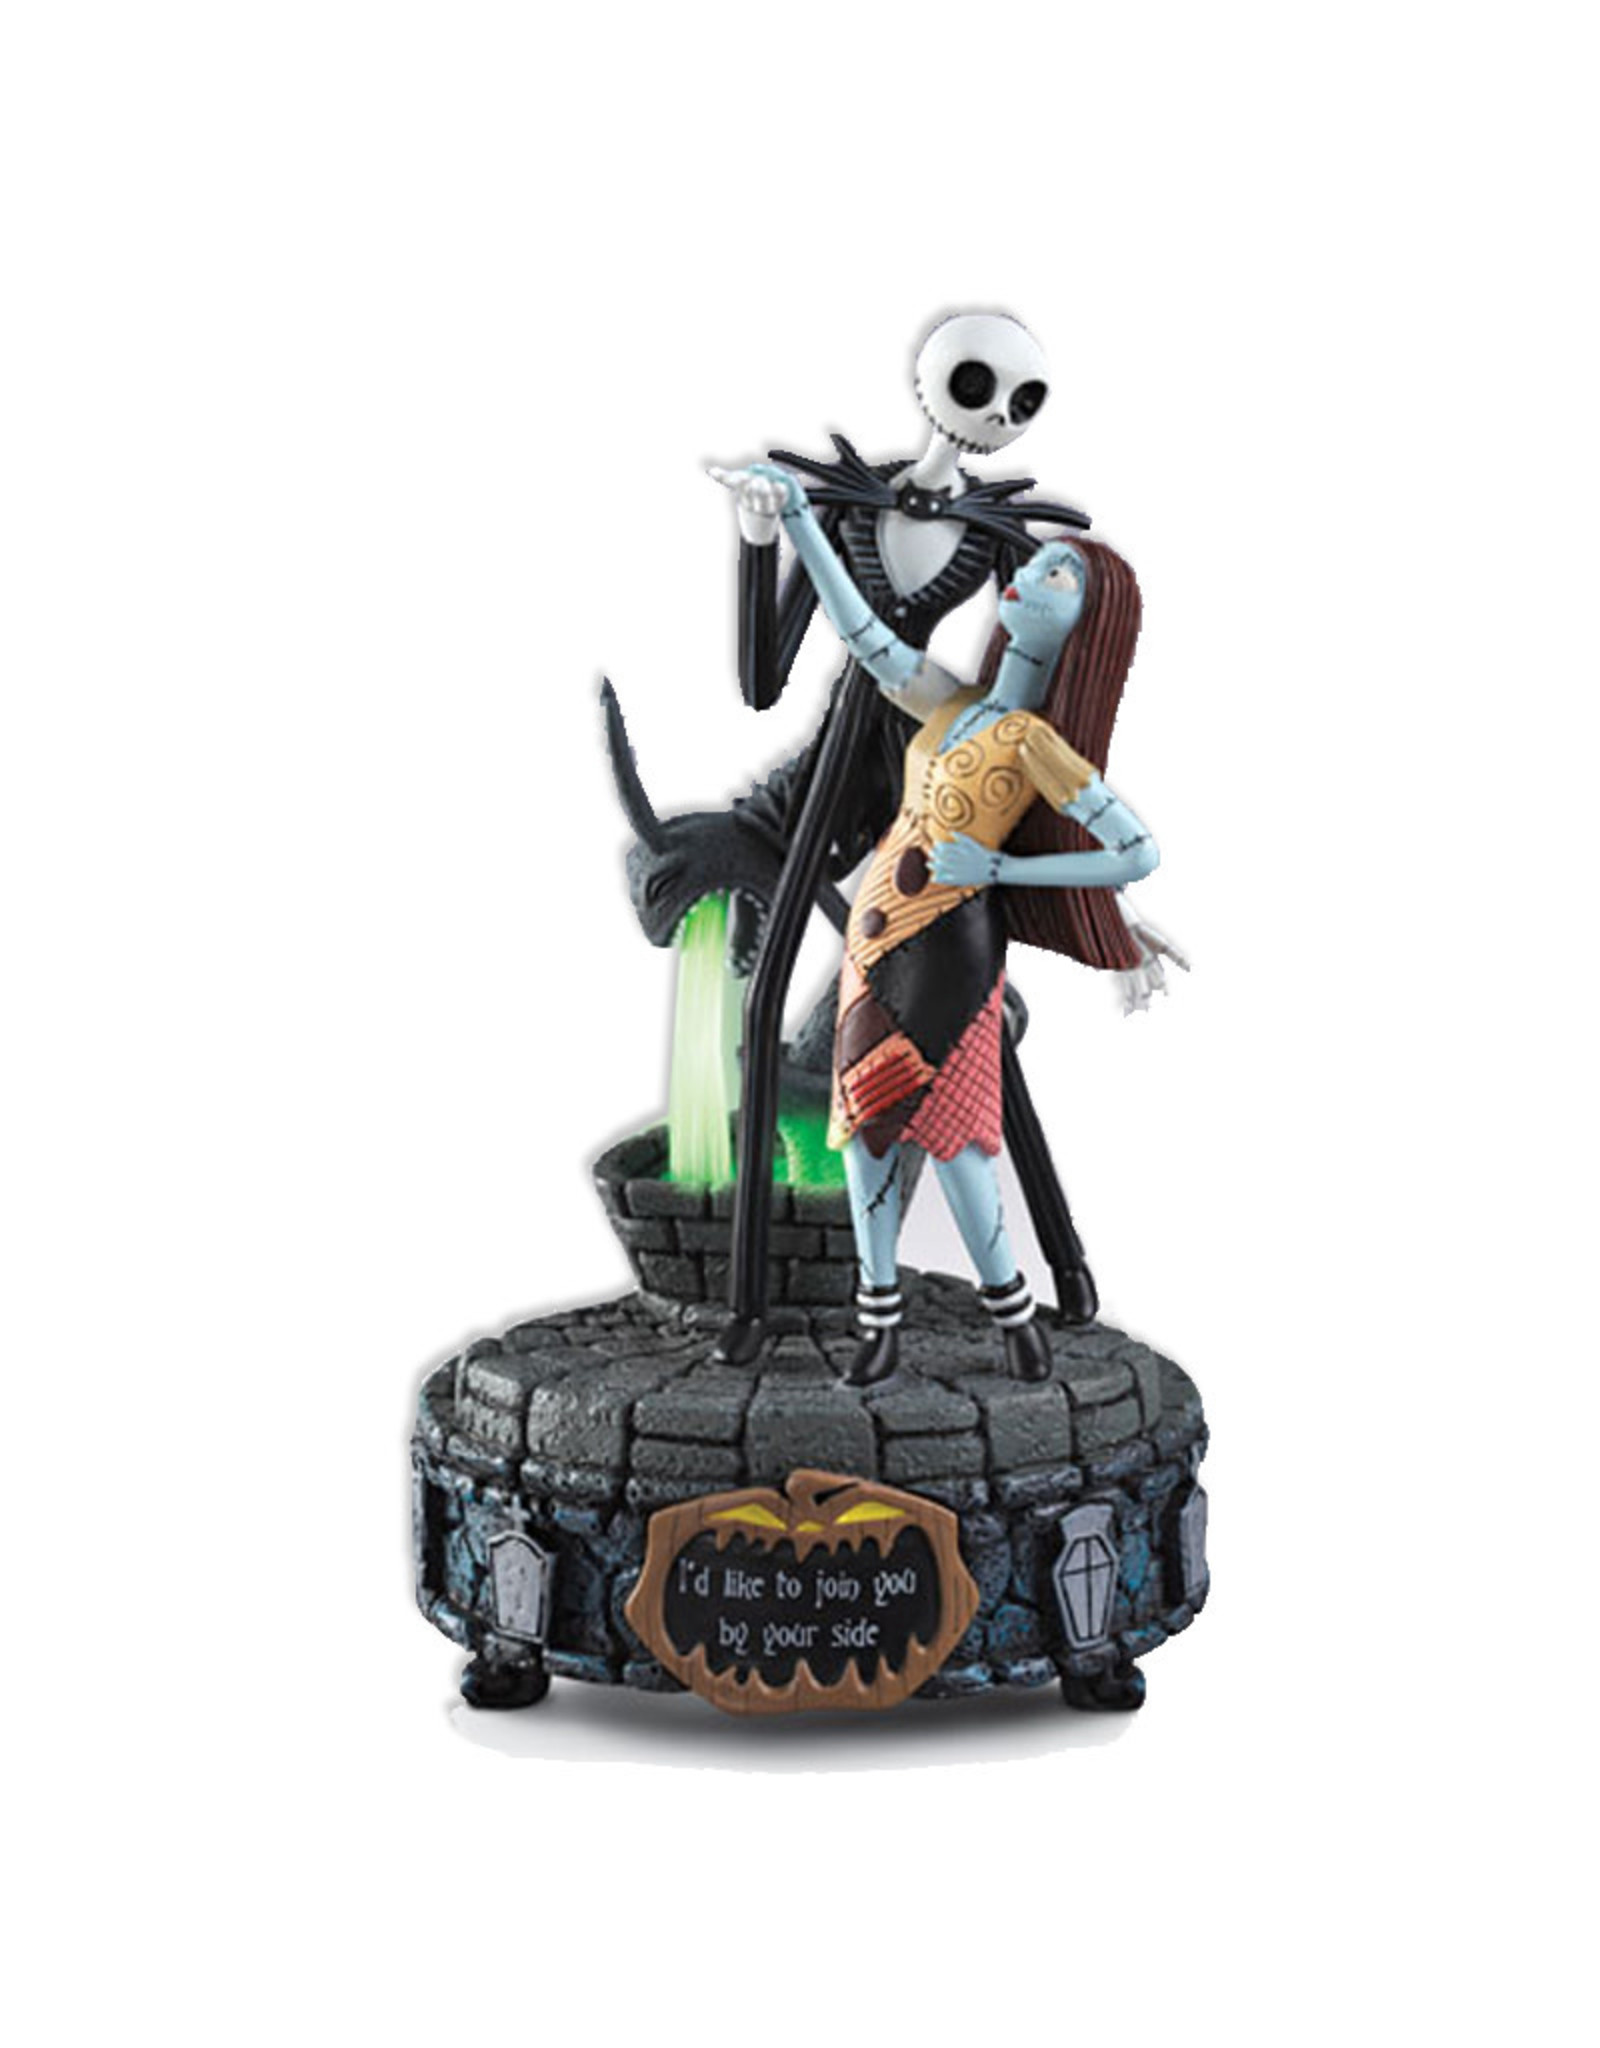 The Nightmare Before Christmas The Nightmare Before Christmas ( Musical Figurine ) Join you by your Side